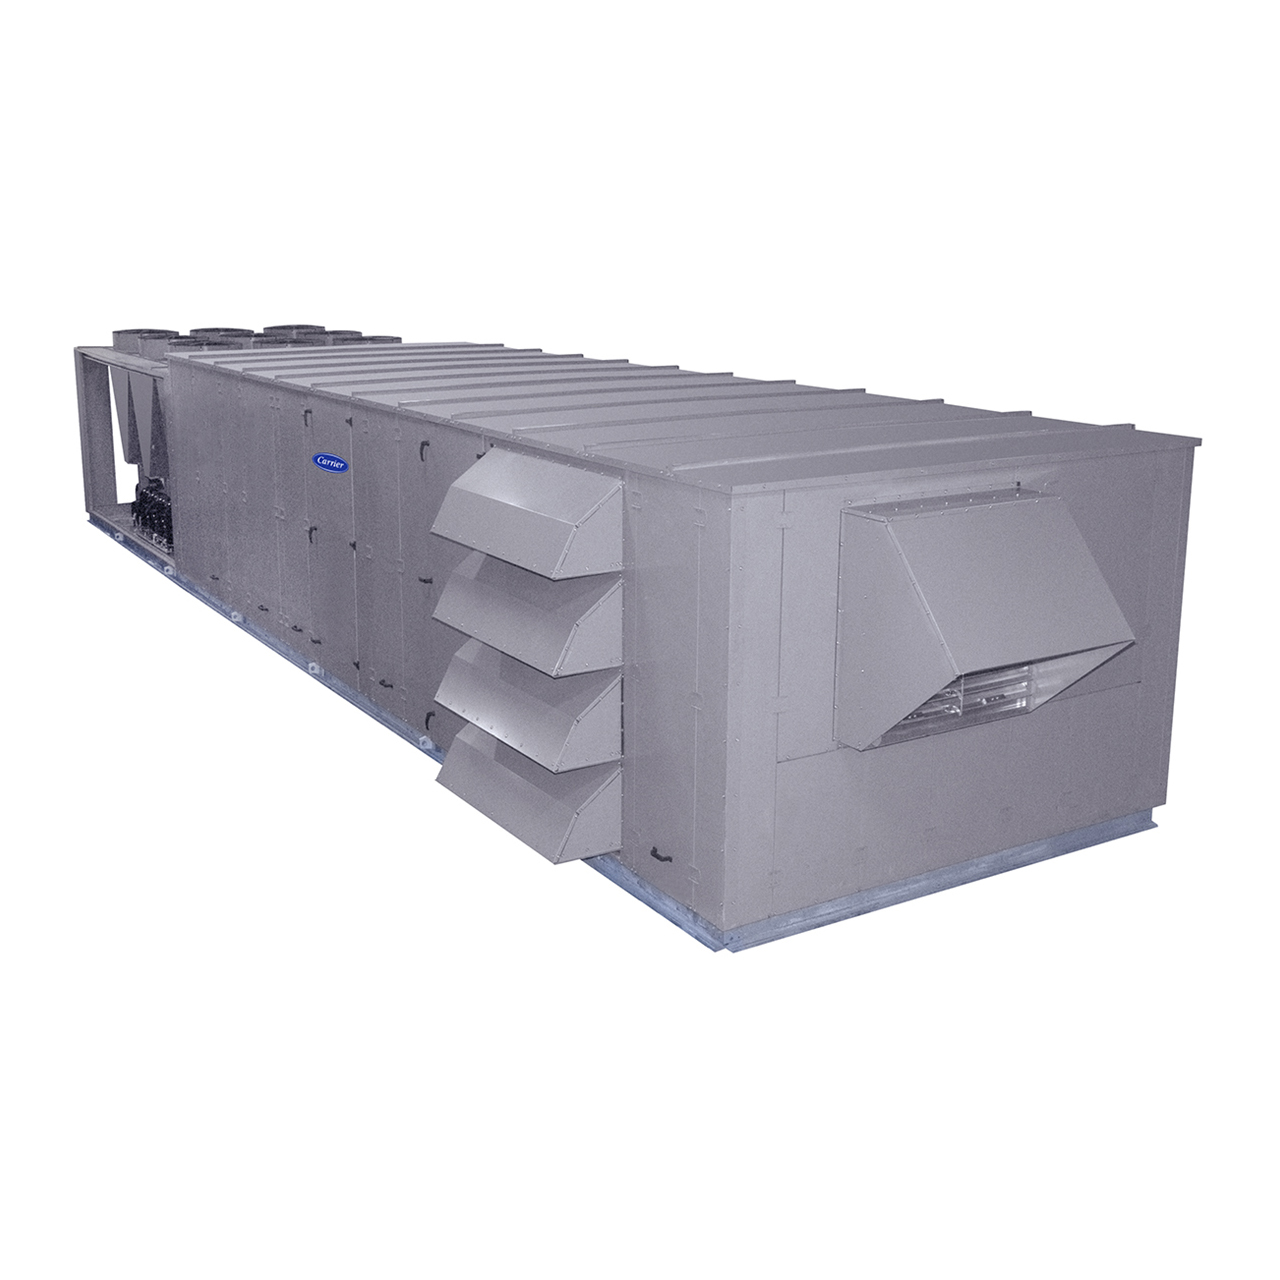 Carrier N Series rooftop units are pre-wired and factory-tested in both cooling and heating modes. All 50N models feature a double wall foam panel cabinet design with hinged man-sized access panels.